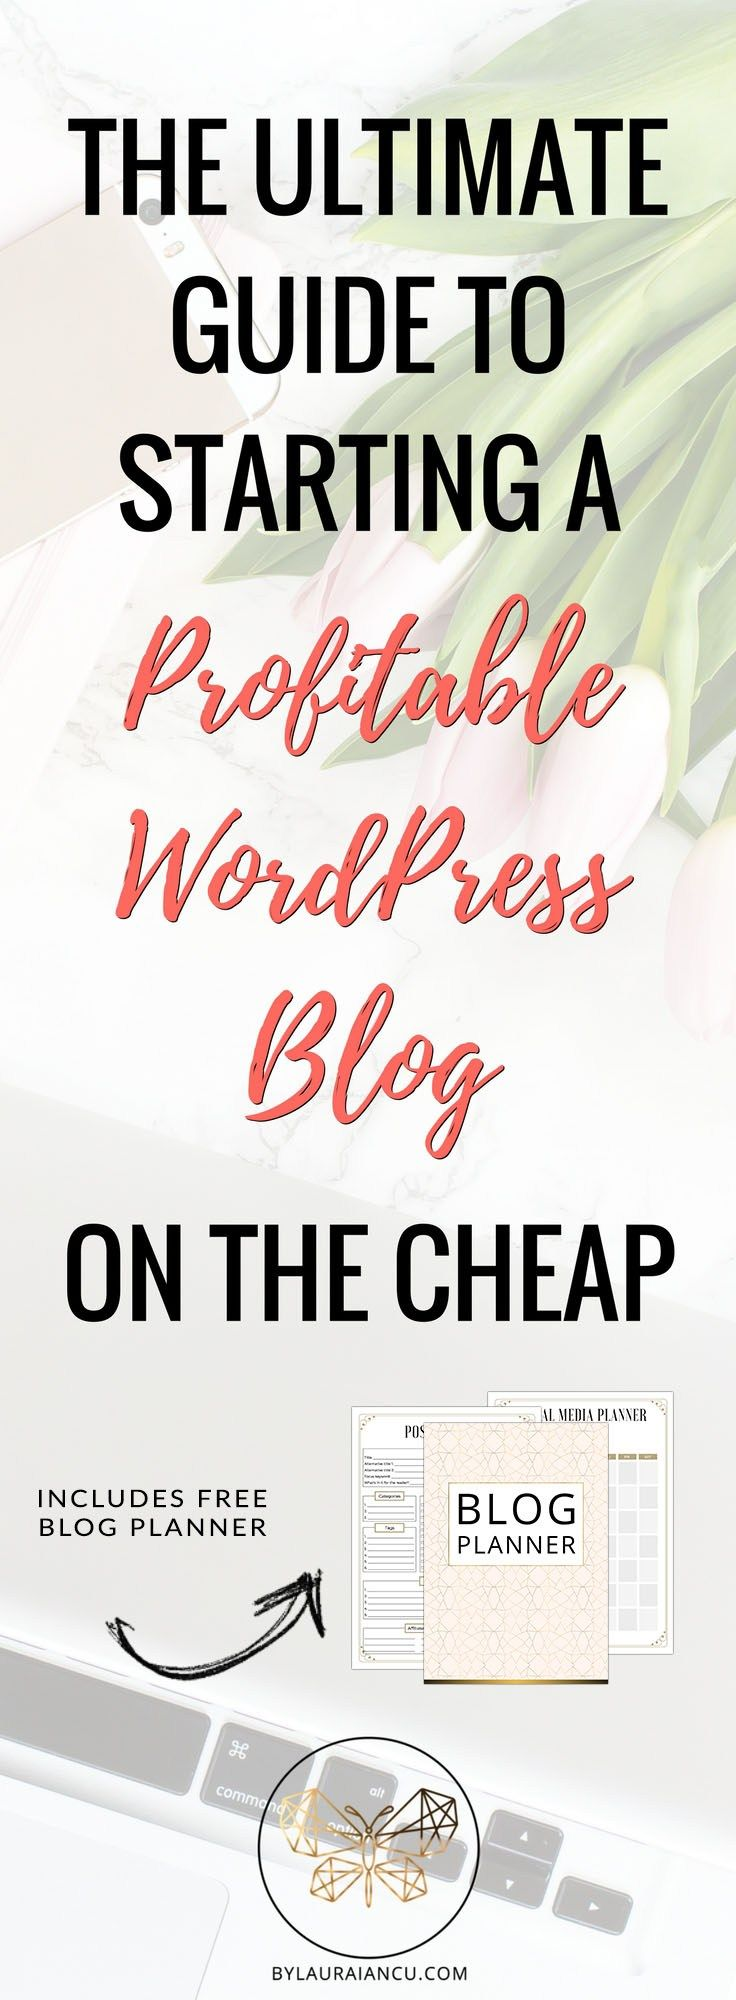 How to launch a self-hosted WordPress blog on a budget. You can start a profitable blog and make money from home. Just follow this step-by-step tutorial on starting a blog with Bluehost. Seriously, this beginner guide to starting a blog is the best!